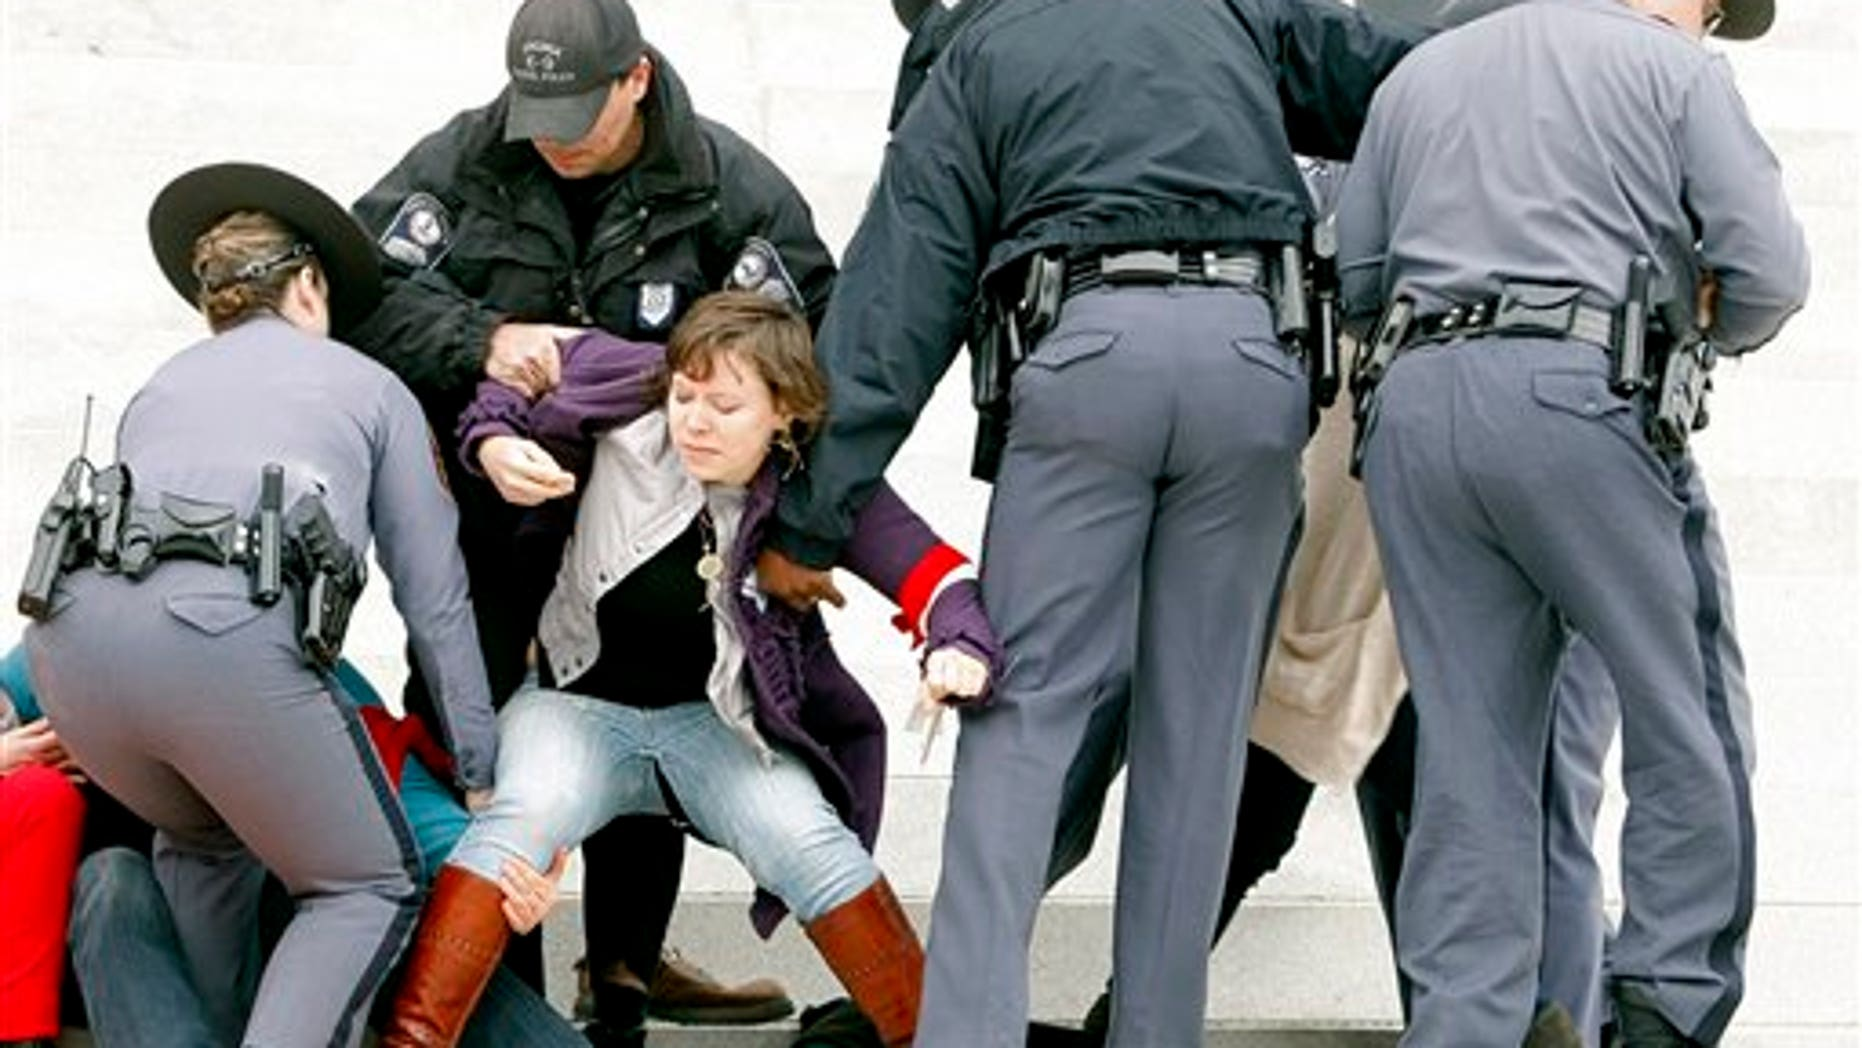 March 3: Protesters are removed from the front steps of the State Capitol in Richmond, Va.